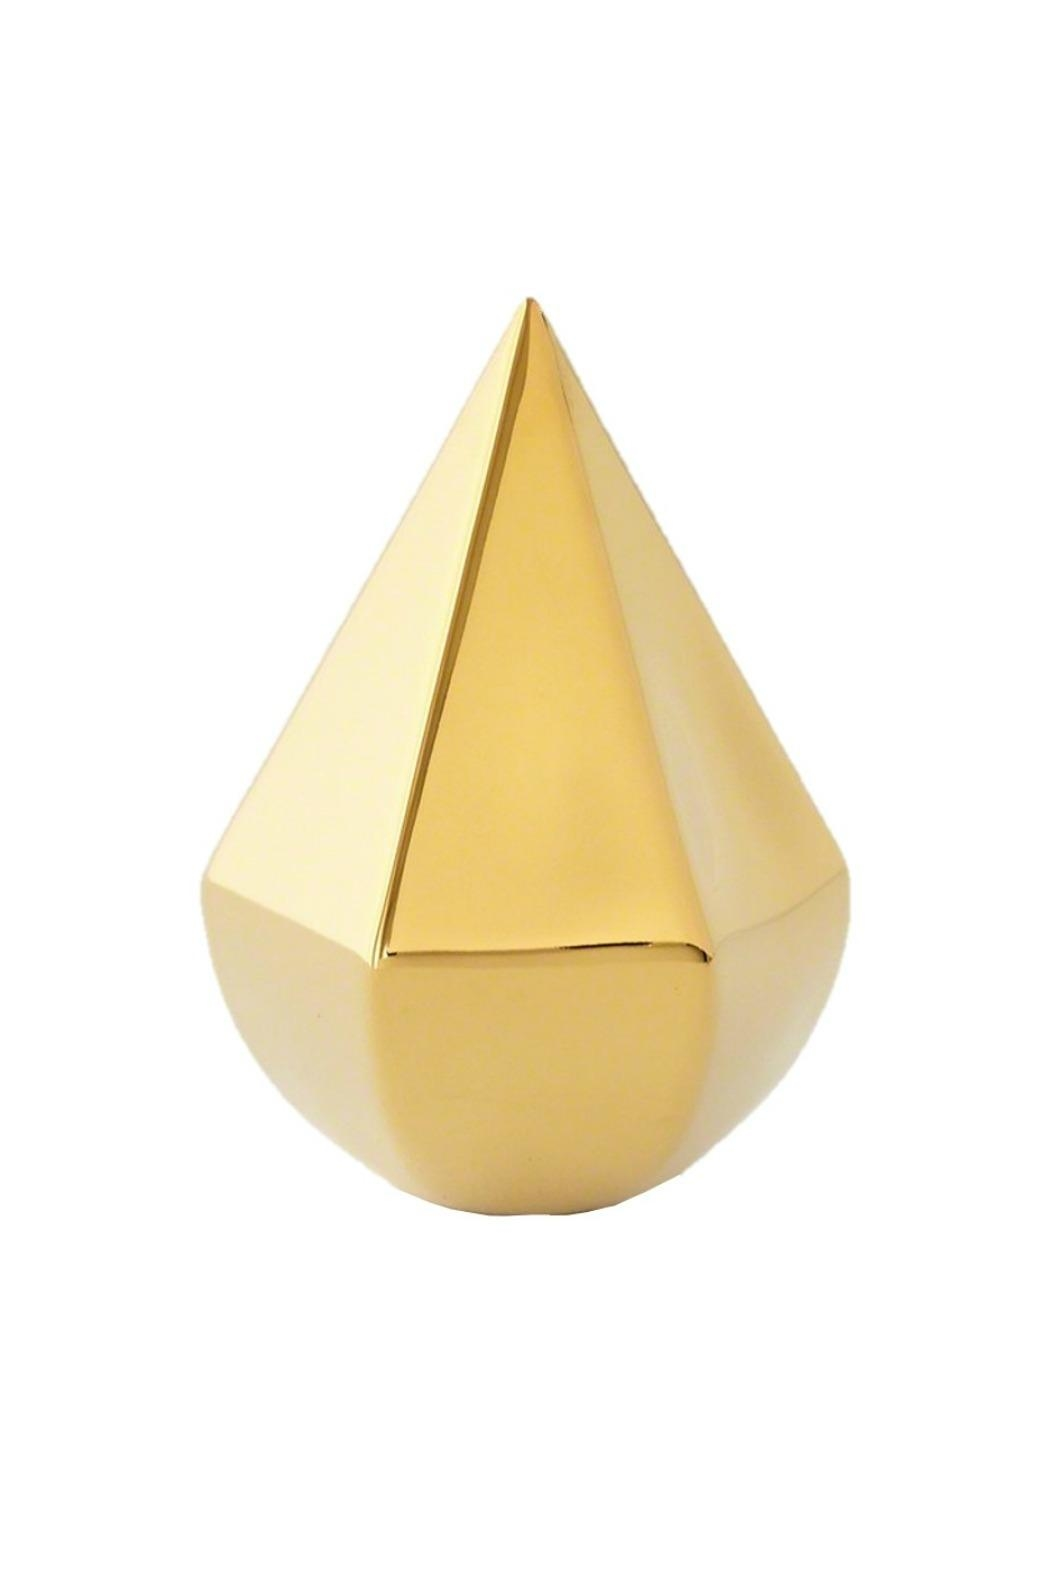 Heather scott home design gold minimalist object from for Minimalist household items